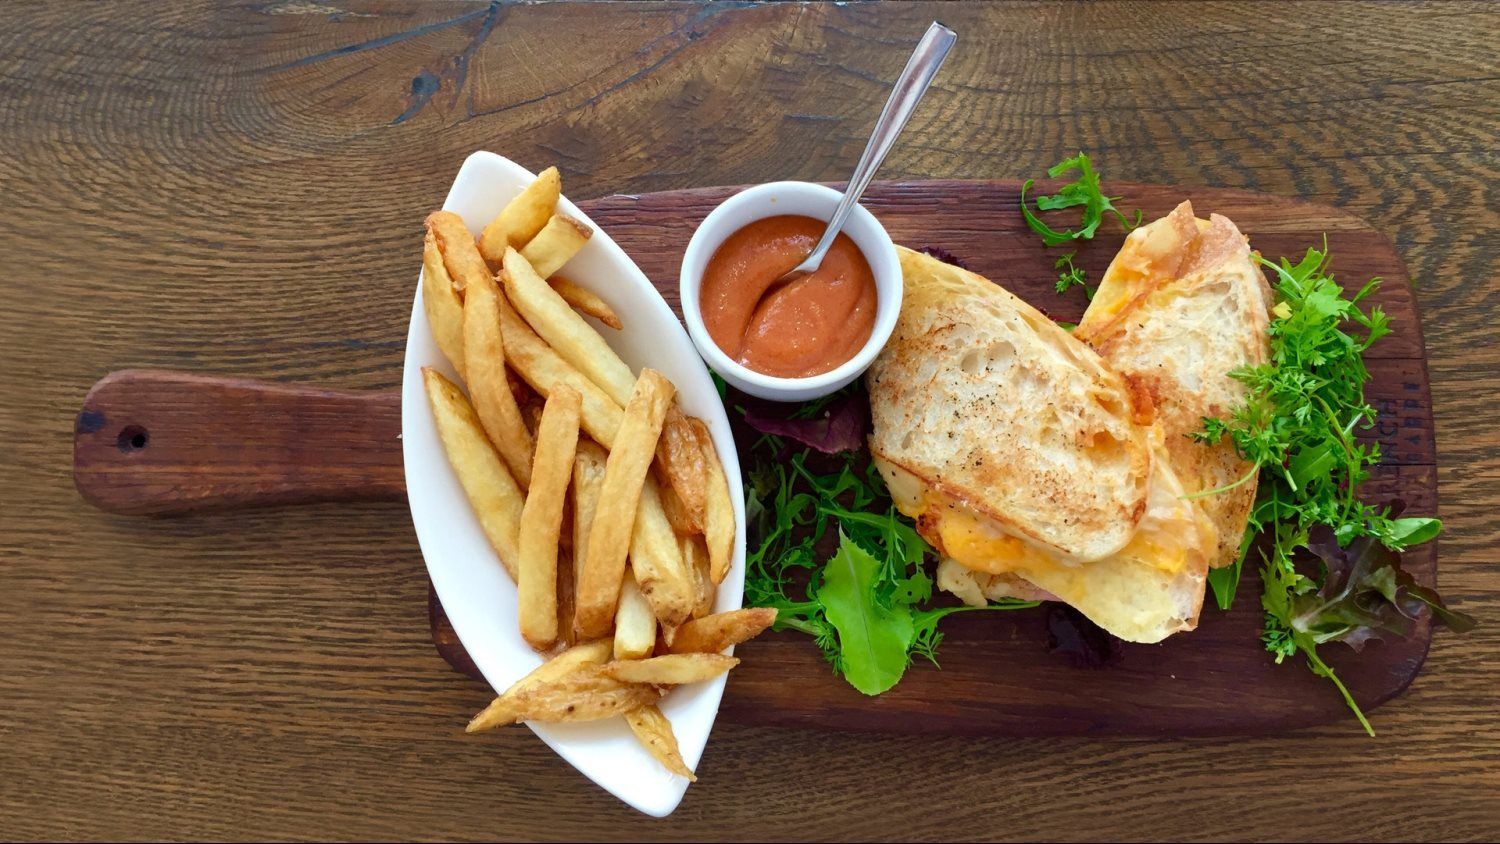 healthy sandwich and fries